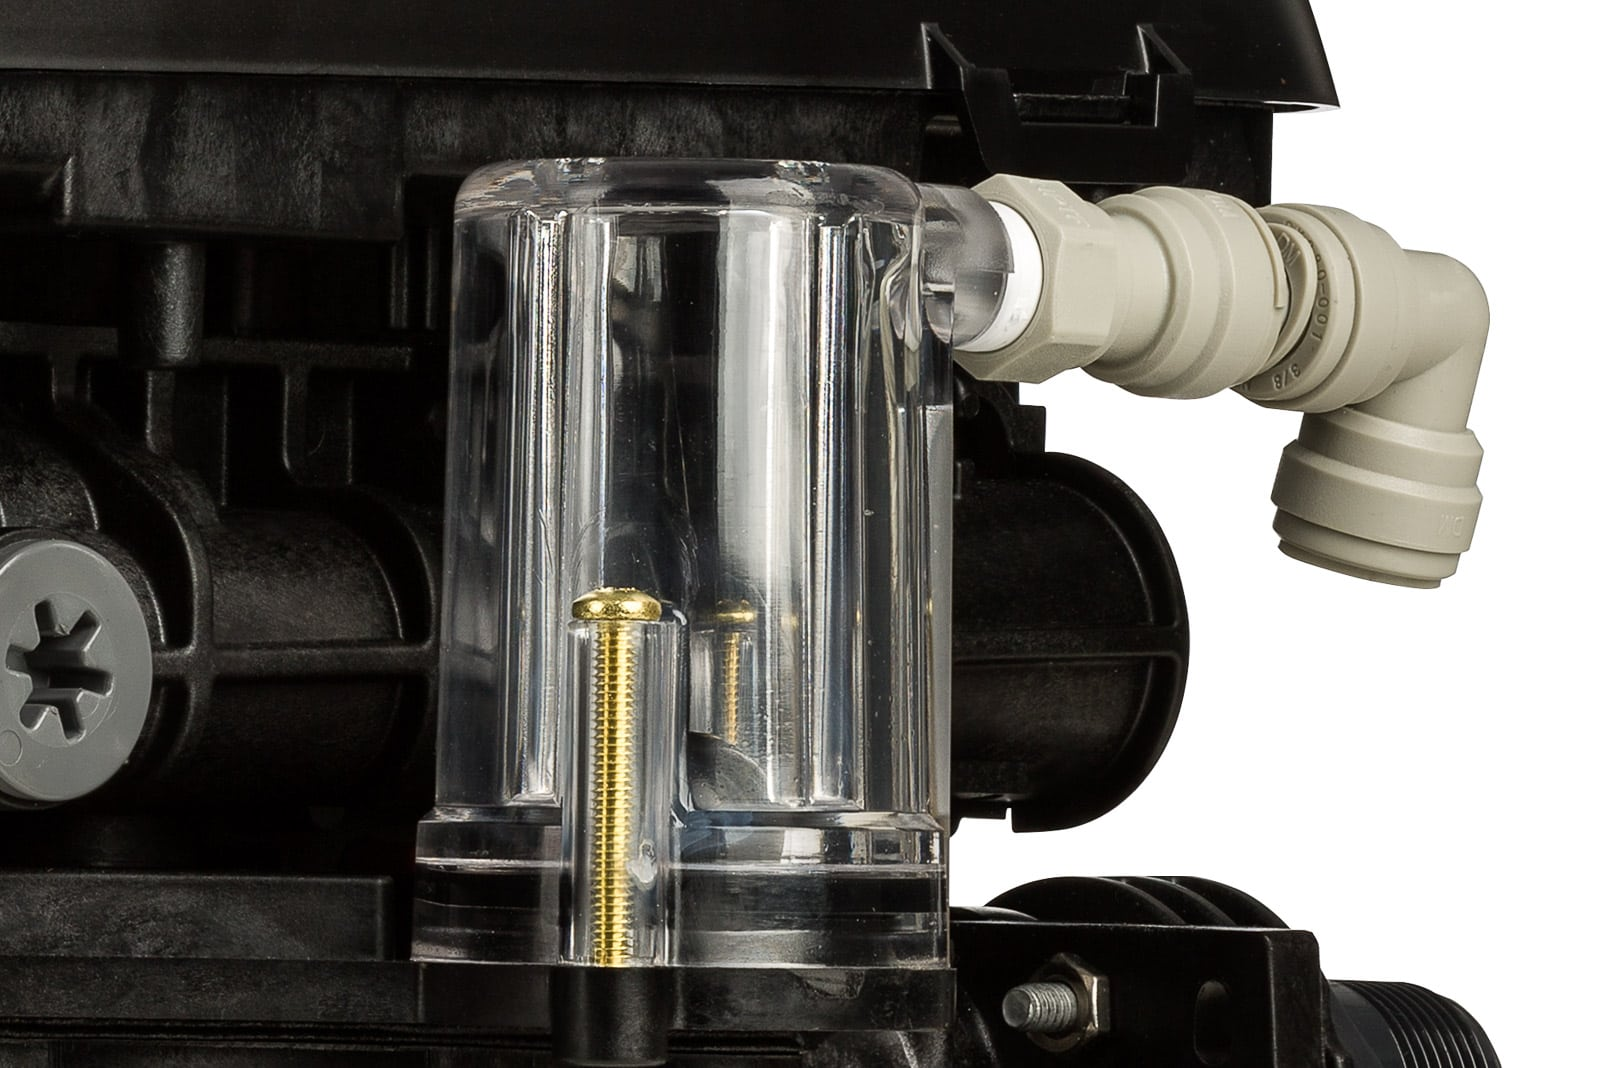 water softener pump product close-up